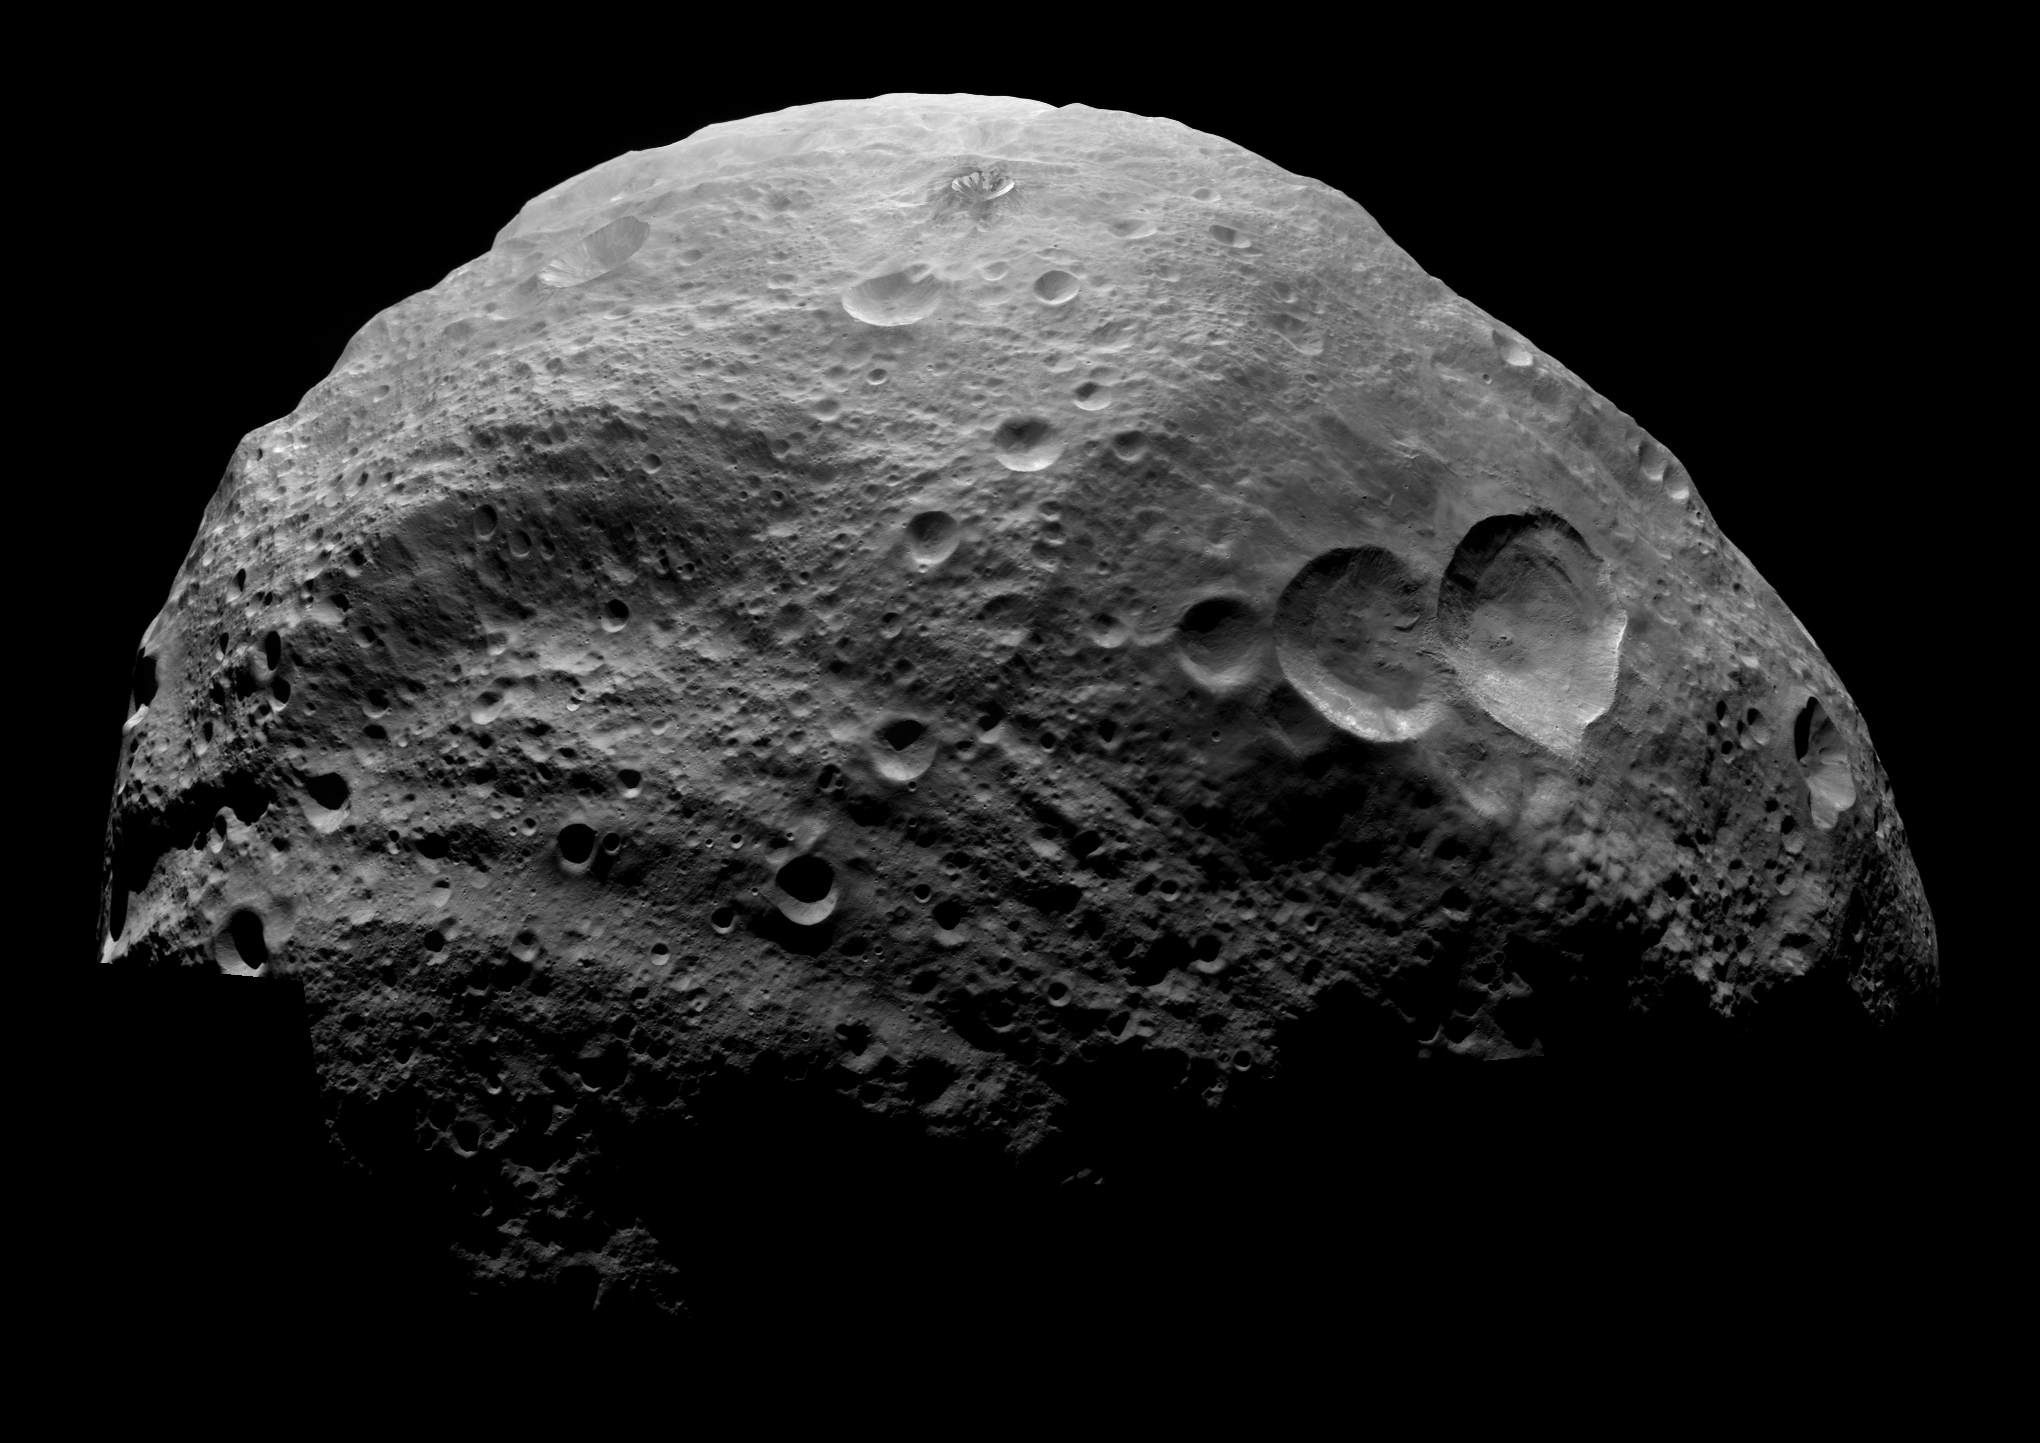 asteroid 4 vesta live position and data theskylivecom - HD 2040×1443